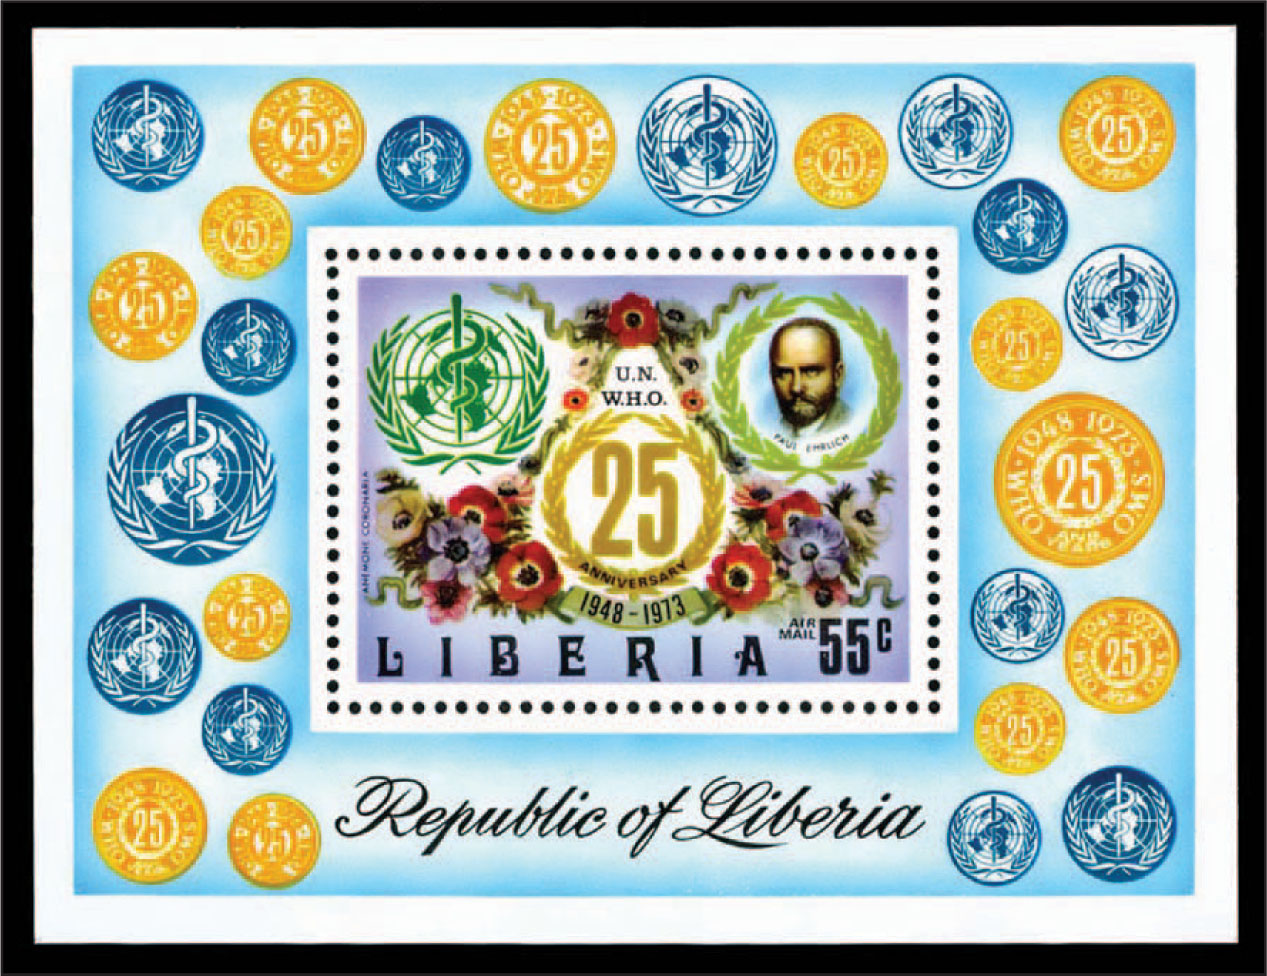 The 1973 Liberian Souvenir Sheet Containing the Small Portrait of Paul Ehrlich, Who Received the Nobel Prize for Physiology or Medicine in 1908.